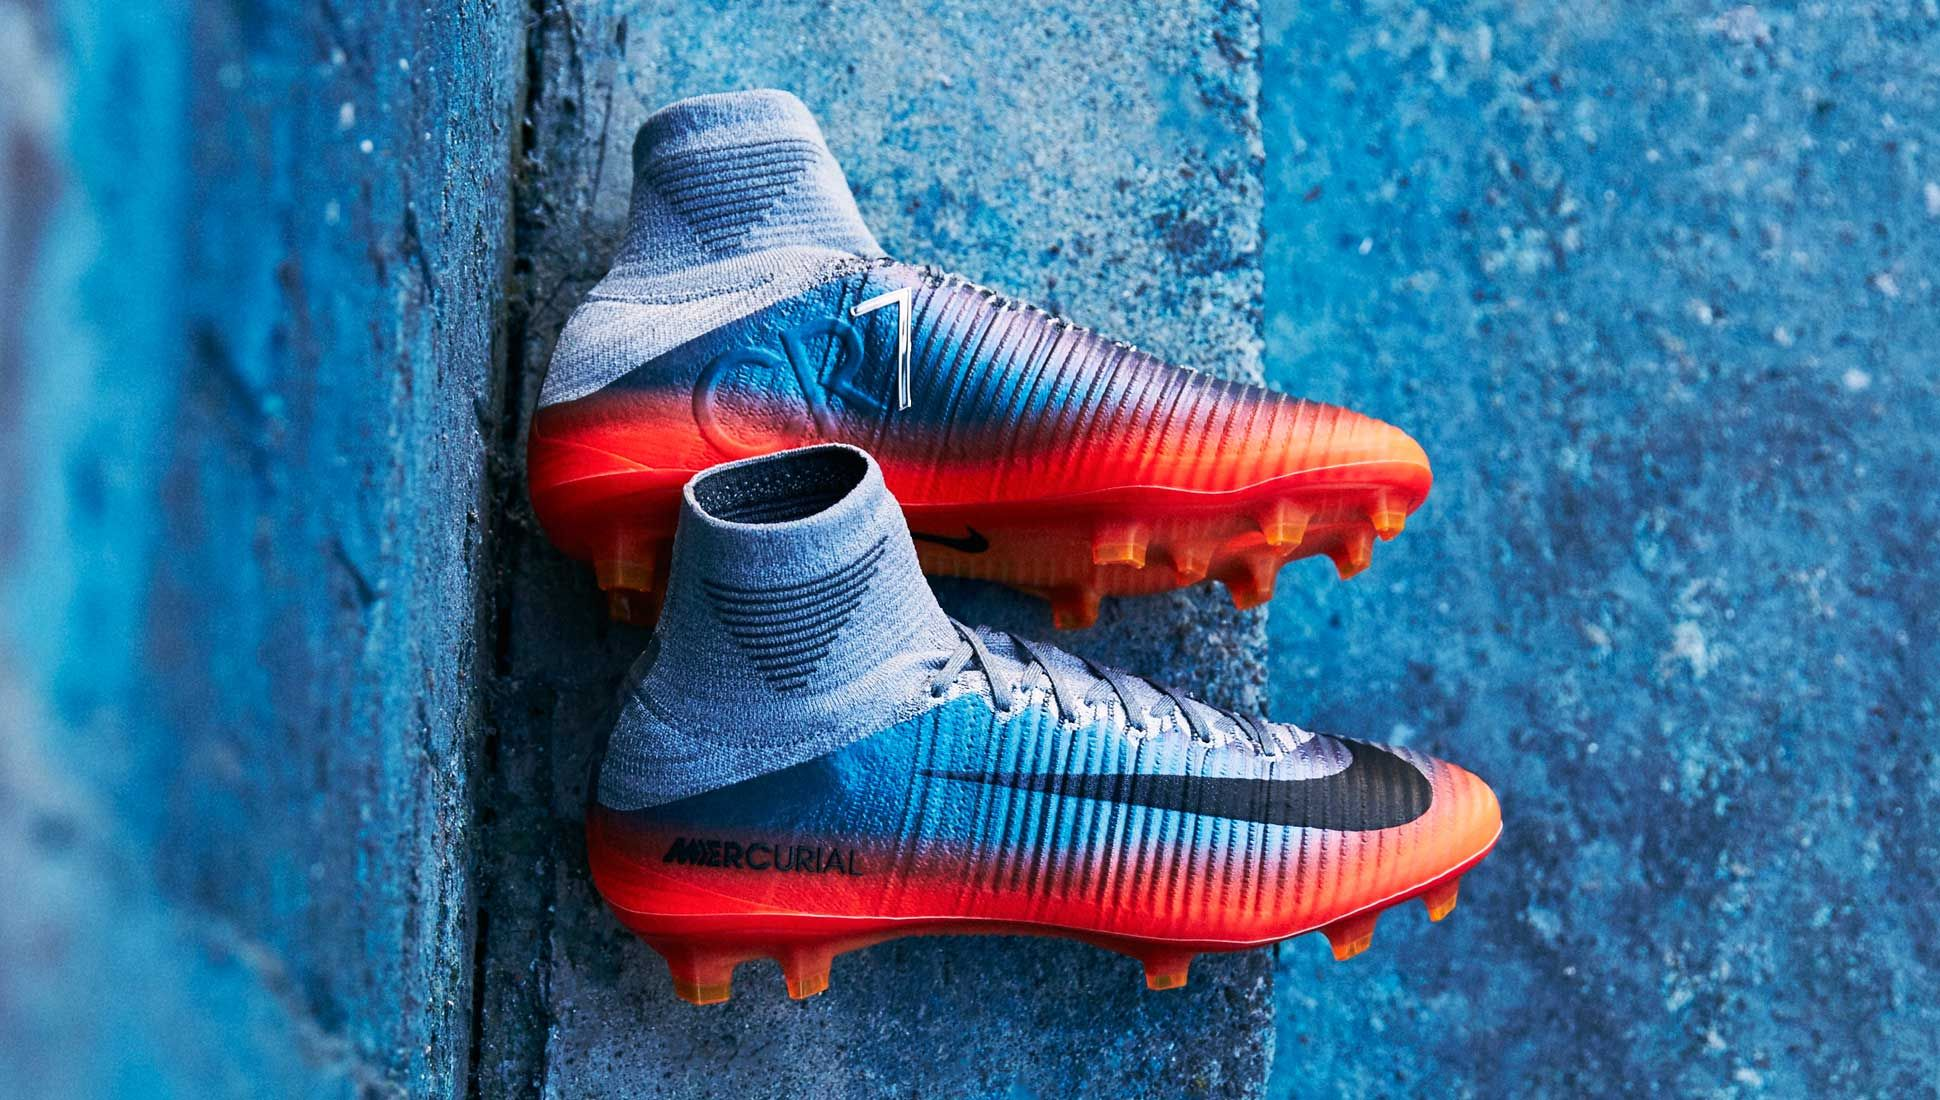 Nike Mercurial Cr7 Chapter 4 Football Boots Soccerbible Football Boots Boots Walk This Way